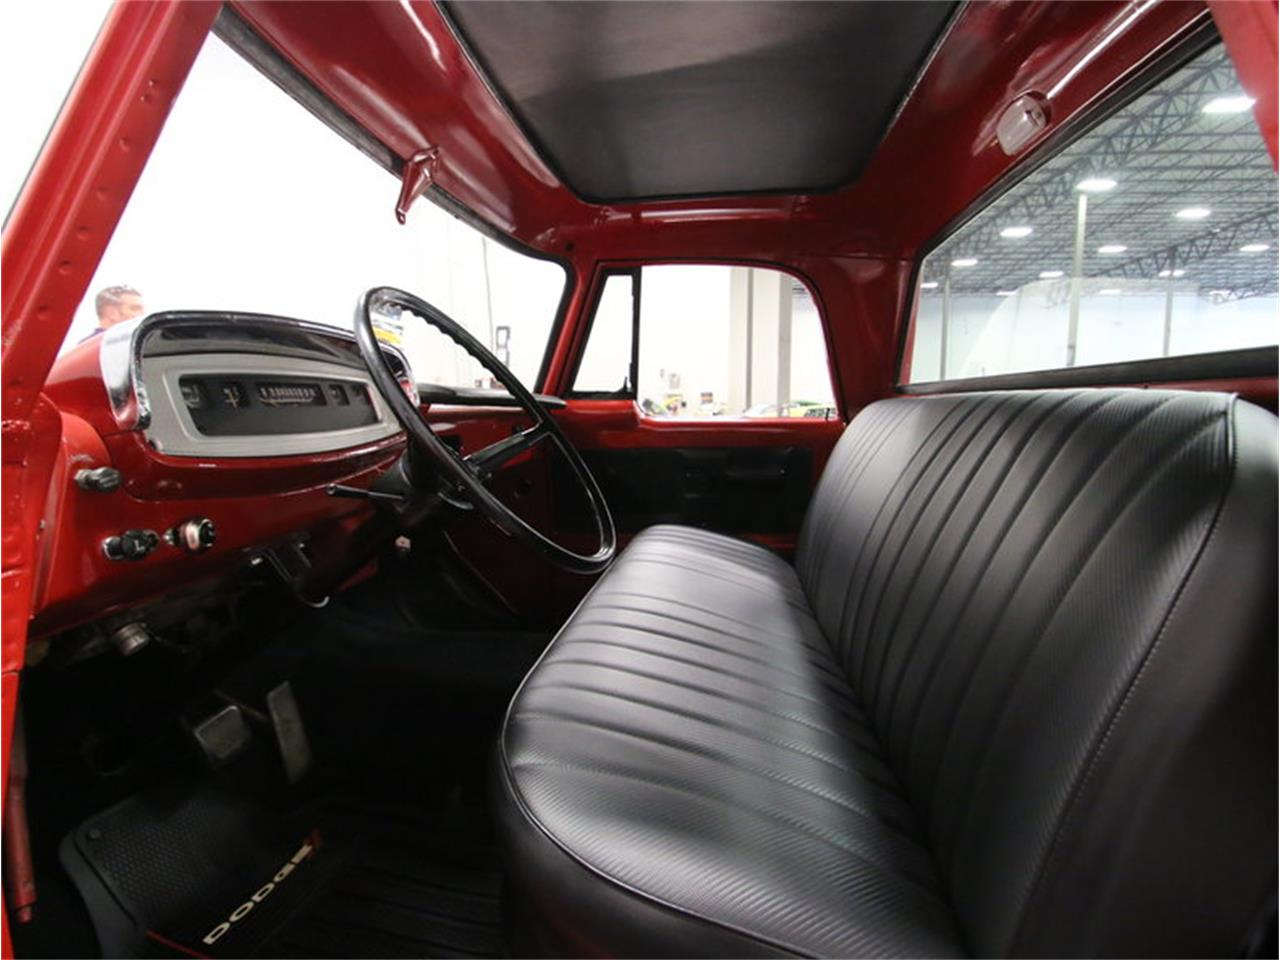 Large Picture of 1967 Dodge D100 located in Tennessee - $19,995.00 Offered by Streetside Classics - Nashville - LTUH